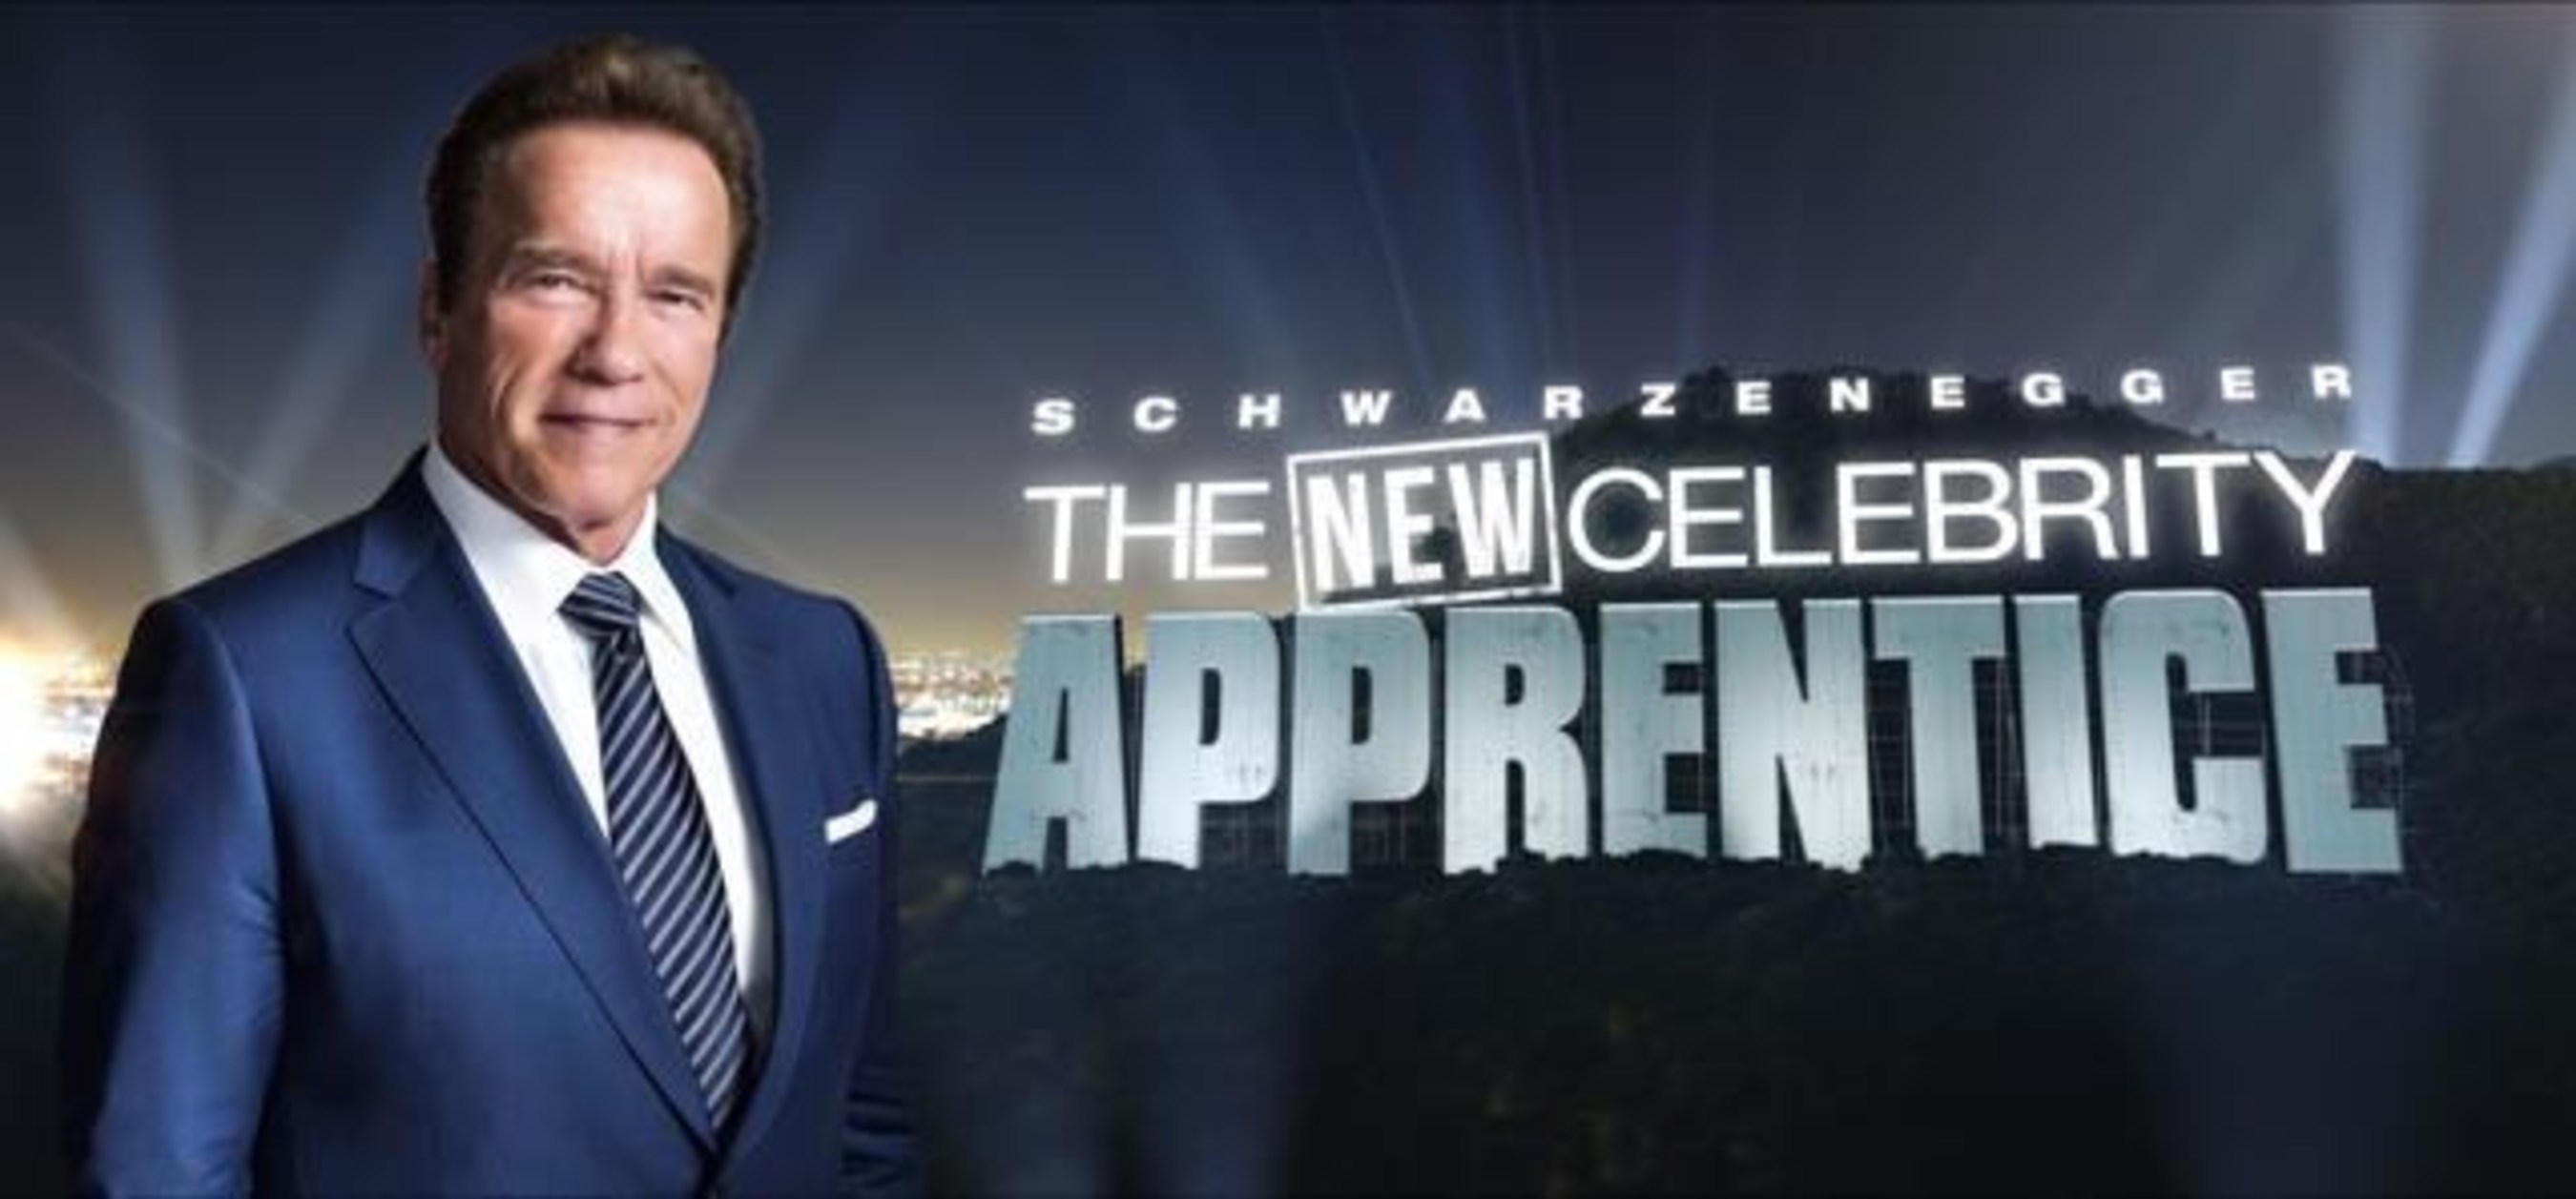 """Carnival Corporation & plc, the world's largest leisure travel company, will sponsor the two-part finale of the upcoming season of NBC's """"The New Celebrity Apprentice"""" airing next year on February 6 and 13. The sponsorship also features Carnival Corporation launching the Celebrity Apprentice Charity Challenge, supporting the charities chosen by the celebrity contestants while driving consumer engagement with the show."""